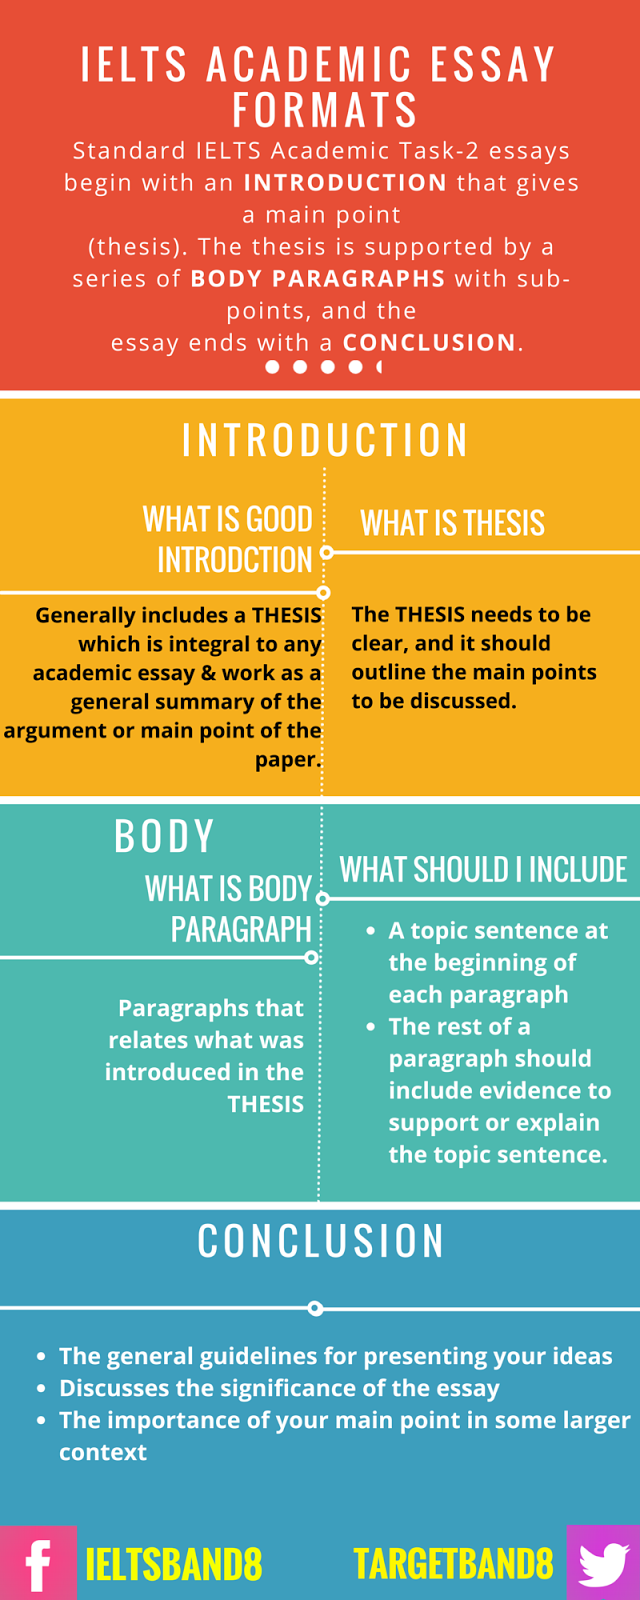 IELTS Writing Task-2 Structure infographic